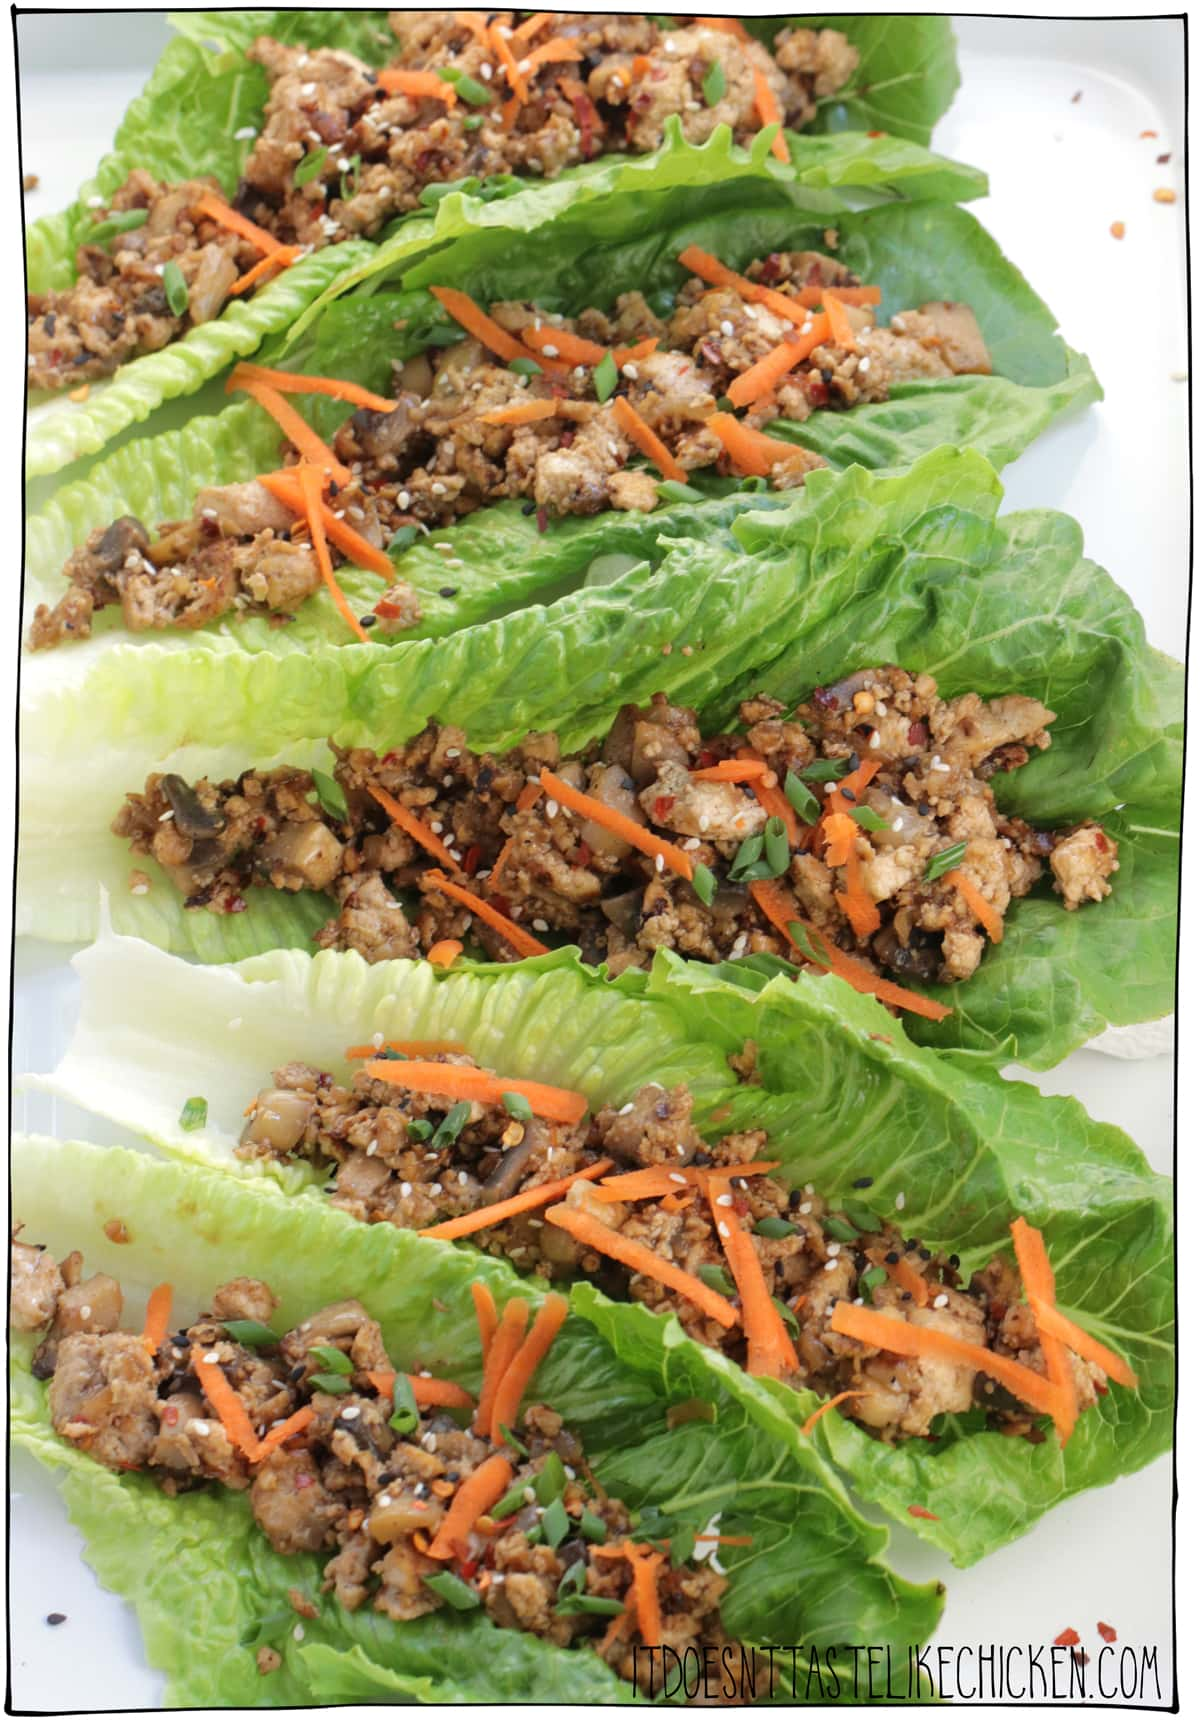 Vegan Mushroom Tofu Lettuce Wraps! These lettuce wraps are easy and quick to make and are incredibly delicious. Perfect for an appetizer or light meal. Meal prep friendly! #itdoesnttastelikechicken #veganrecipes #tofu